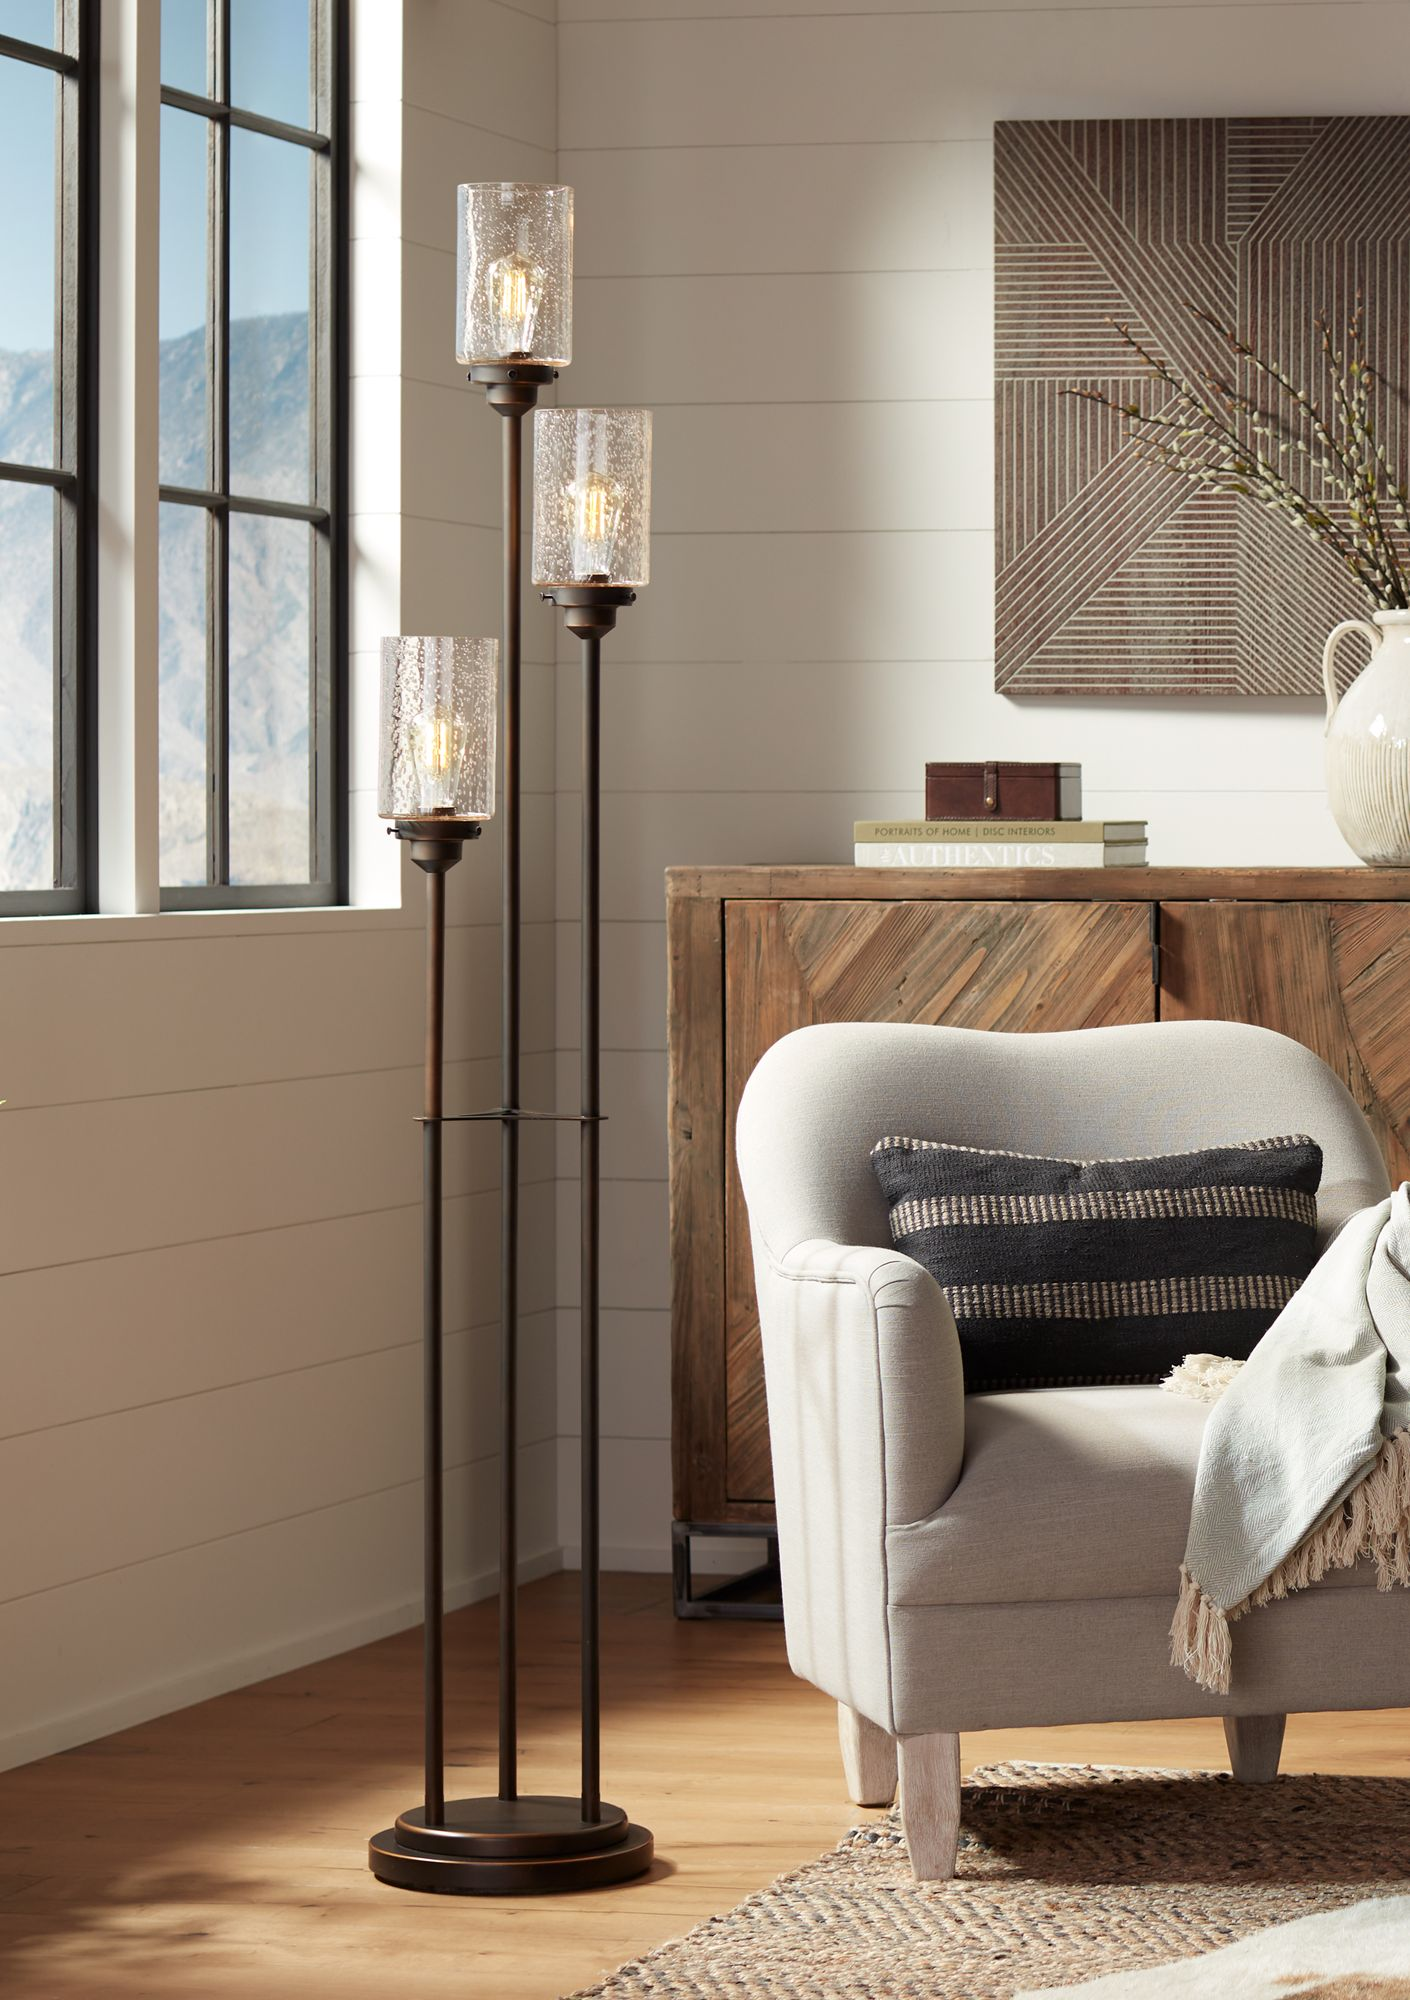 Industrial Floor Lamps - Caged, Edison Bulb Floor Lamp Designs ...